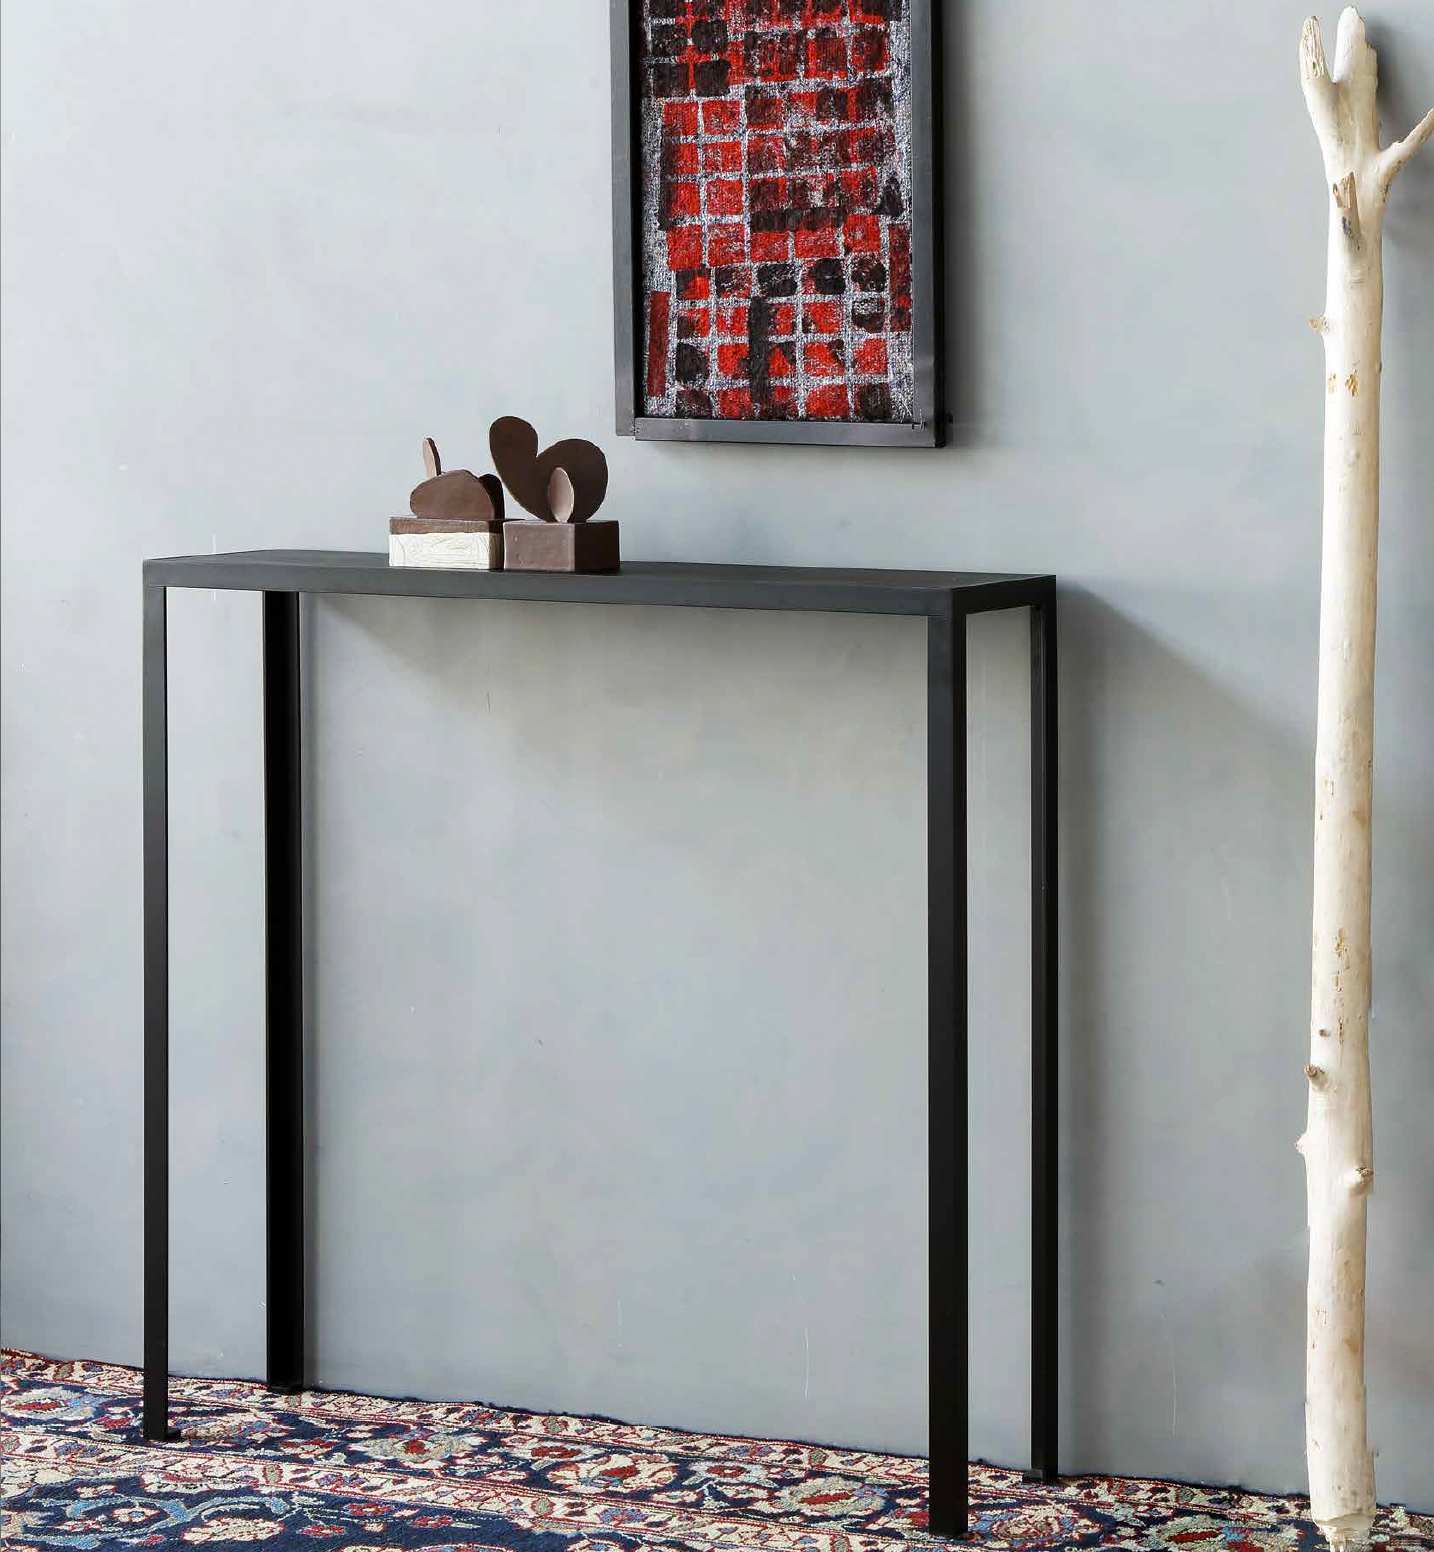 Console Slim - Console slim was designed by Maurizio Peregalli. It is a high console and is a perfect addition to hallways and walkways as well as in the lounge or dining room. It has a steel frame with iron drawn angles. The Console Slim is epoxy painted semi opaque black and is encased top in black linoleum | Matter of Stuff